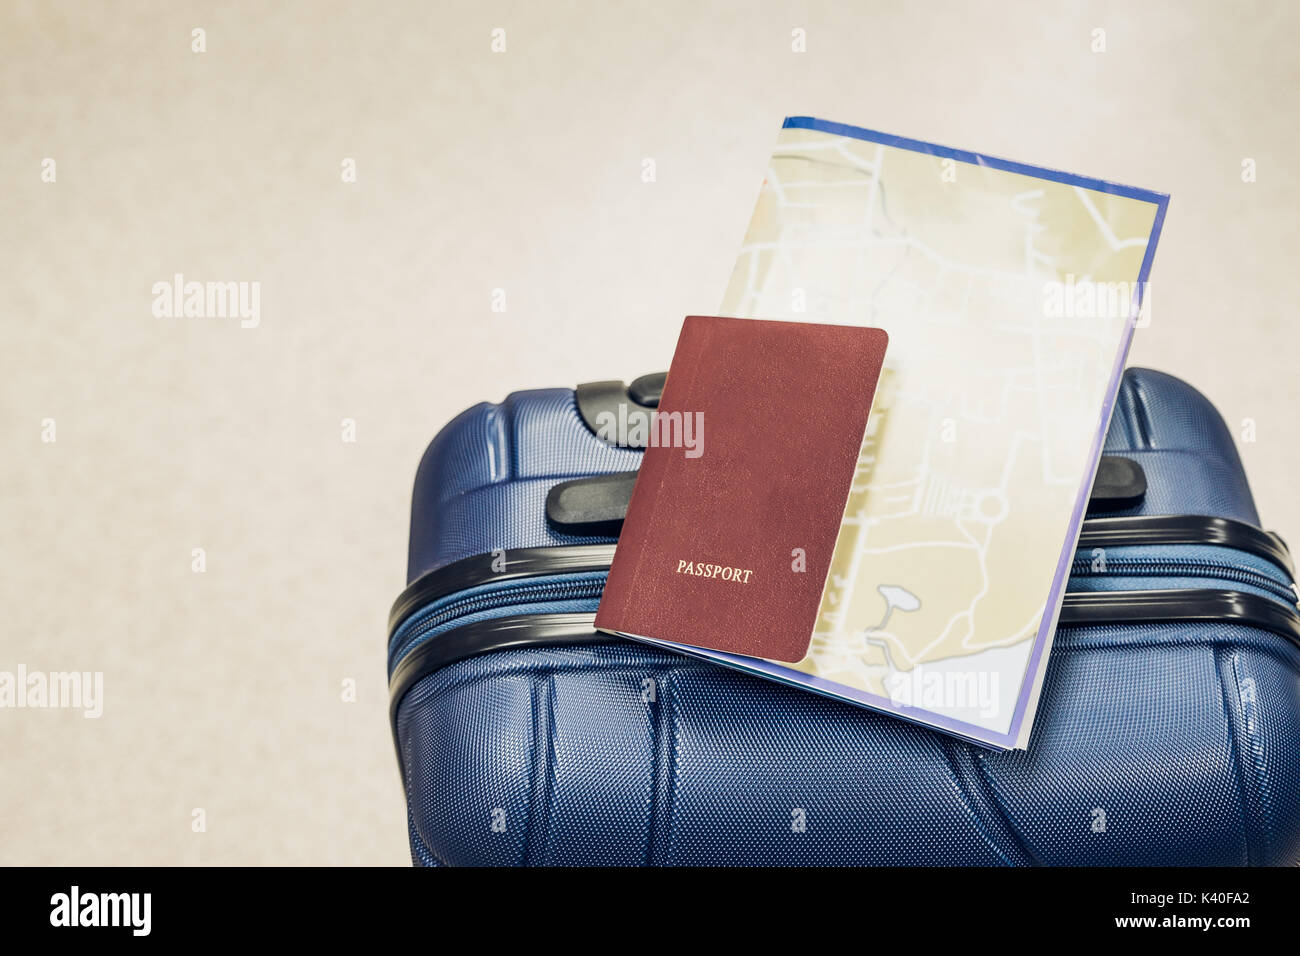 Close up passport and map lay on blue suitcase at airport,travel vacation concept. - Stock Image